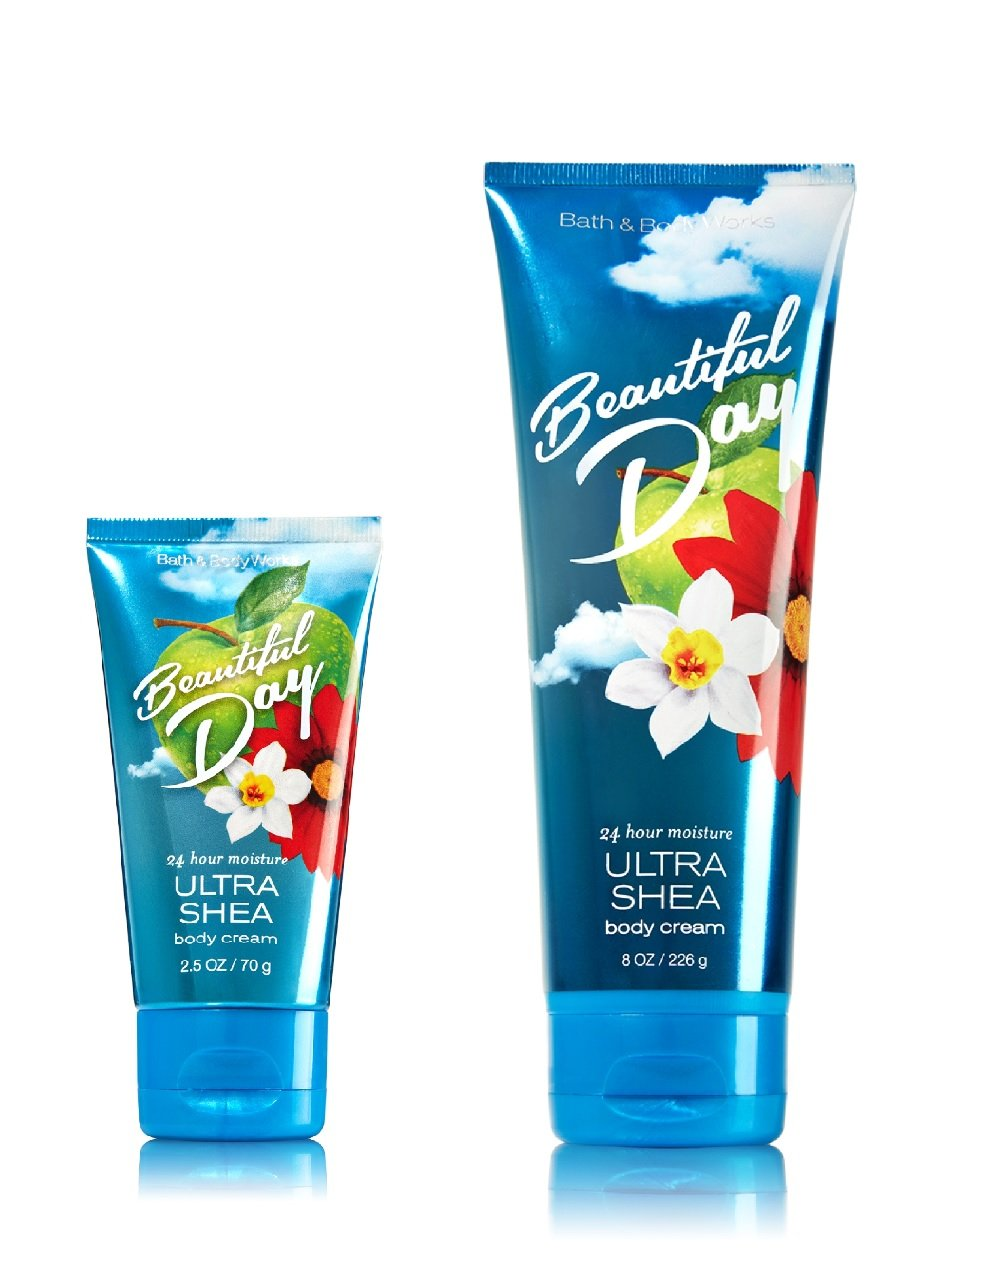 Bath Body Works Cream Set, Full Size and Travel Size, Beautiful Day